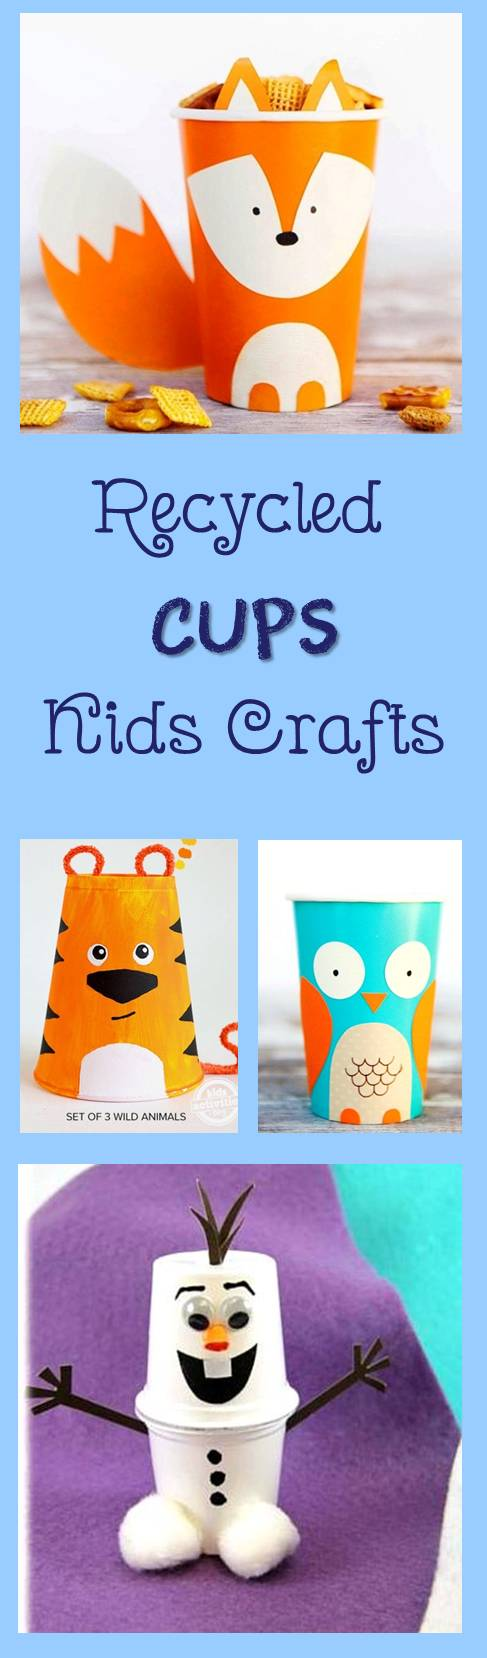 Recycled cup kids crafts